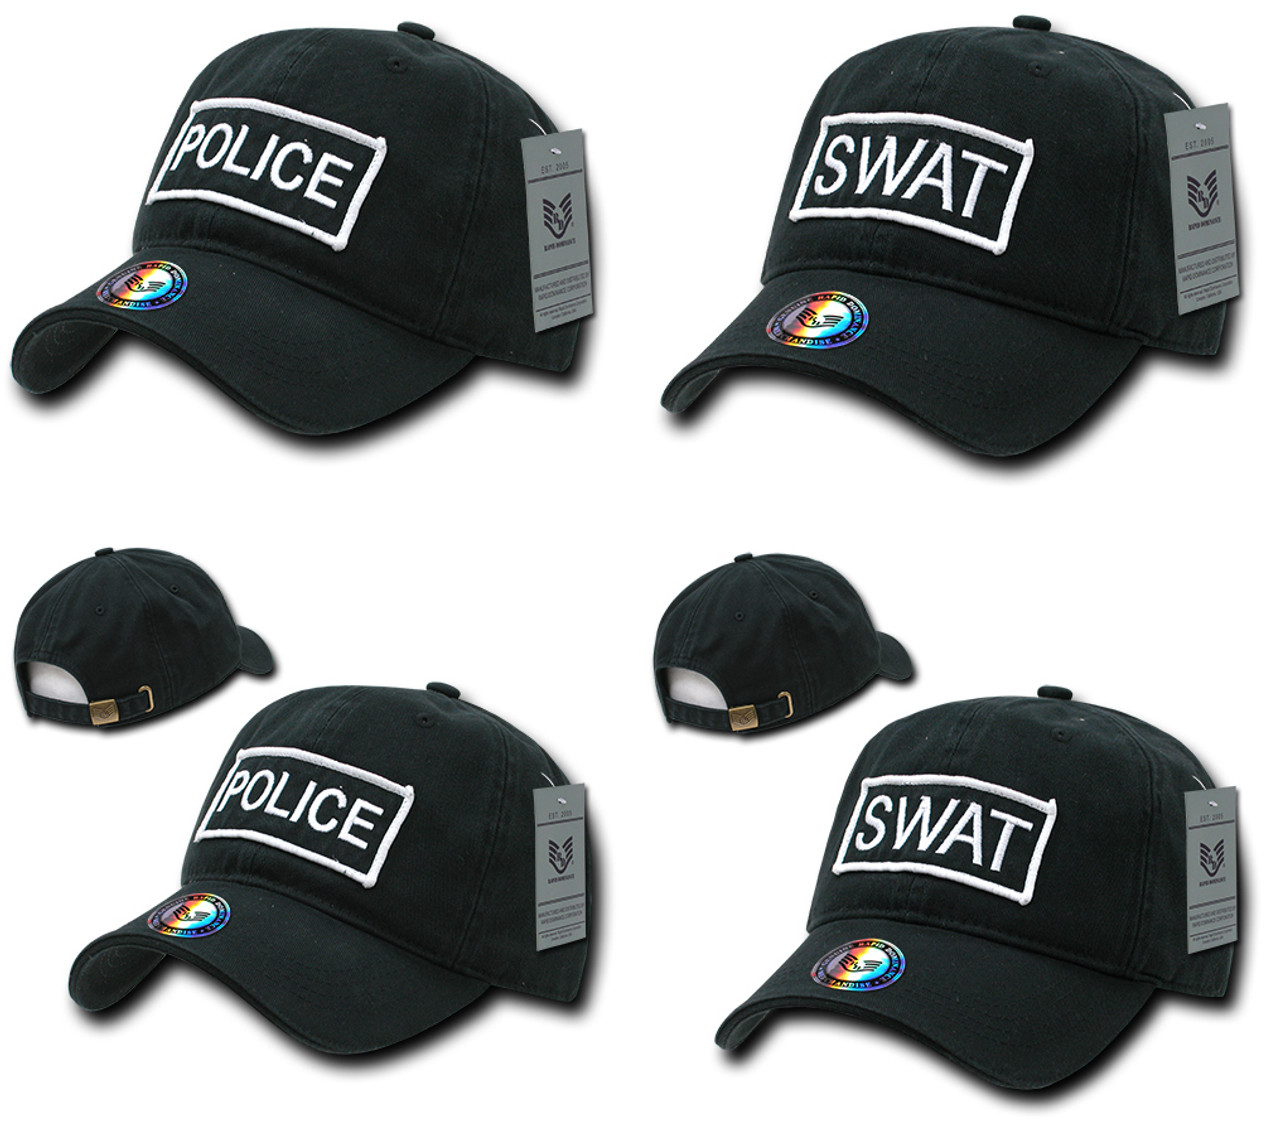 1c42bc8424b Law Enforcement Raid Cap Police or Swat Hat Baseball Cap